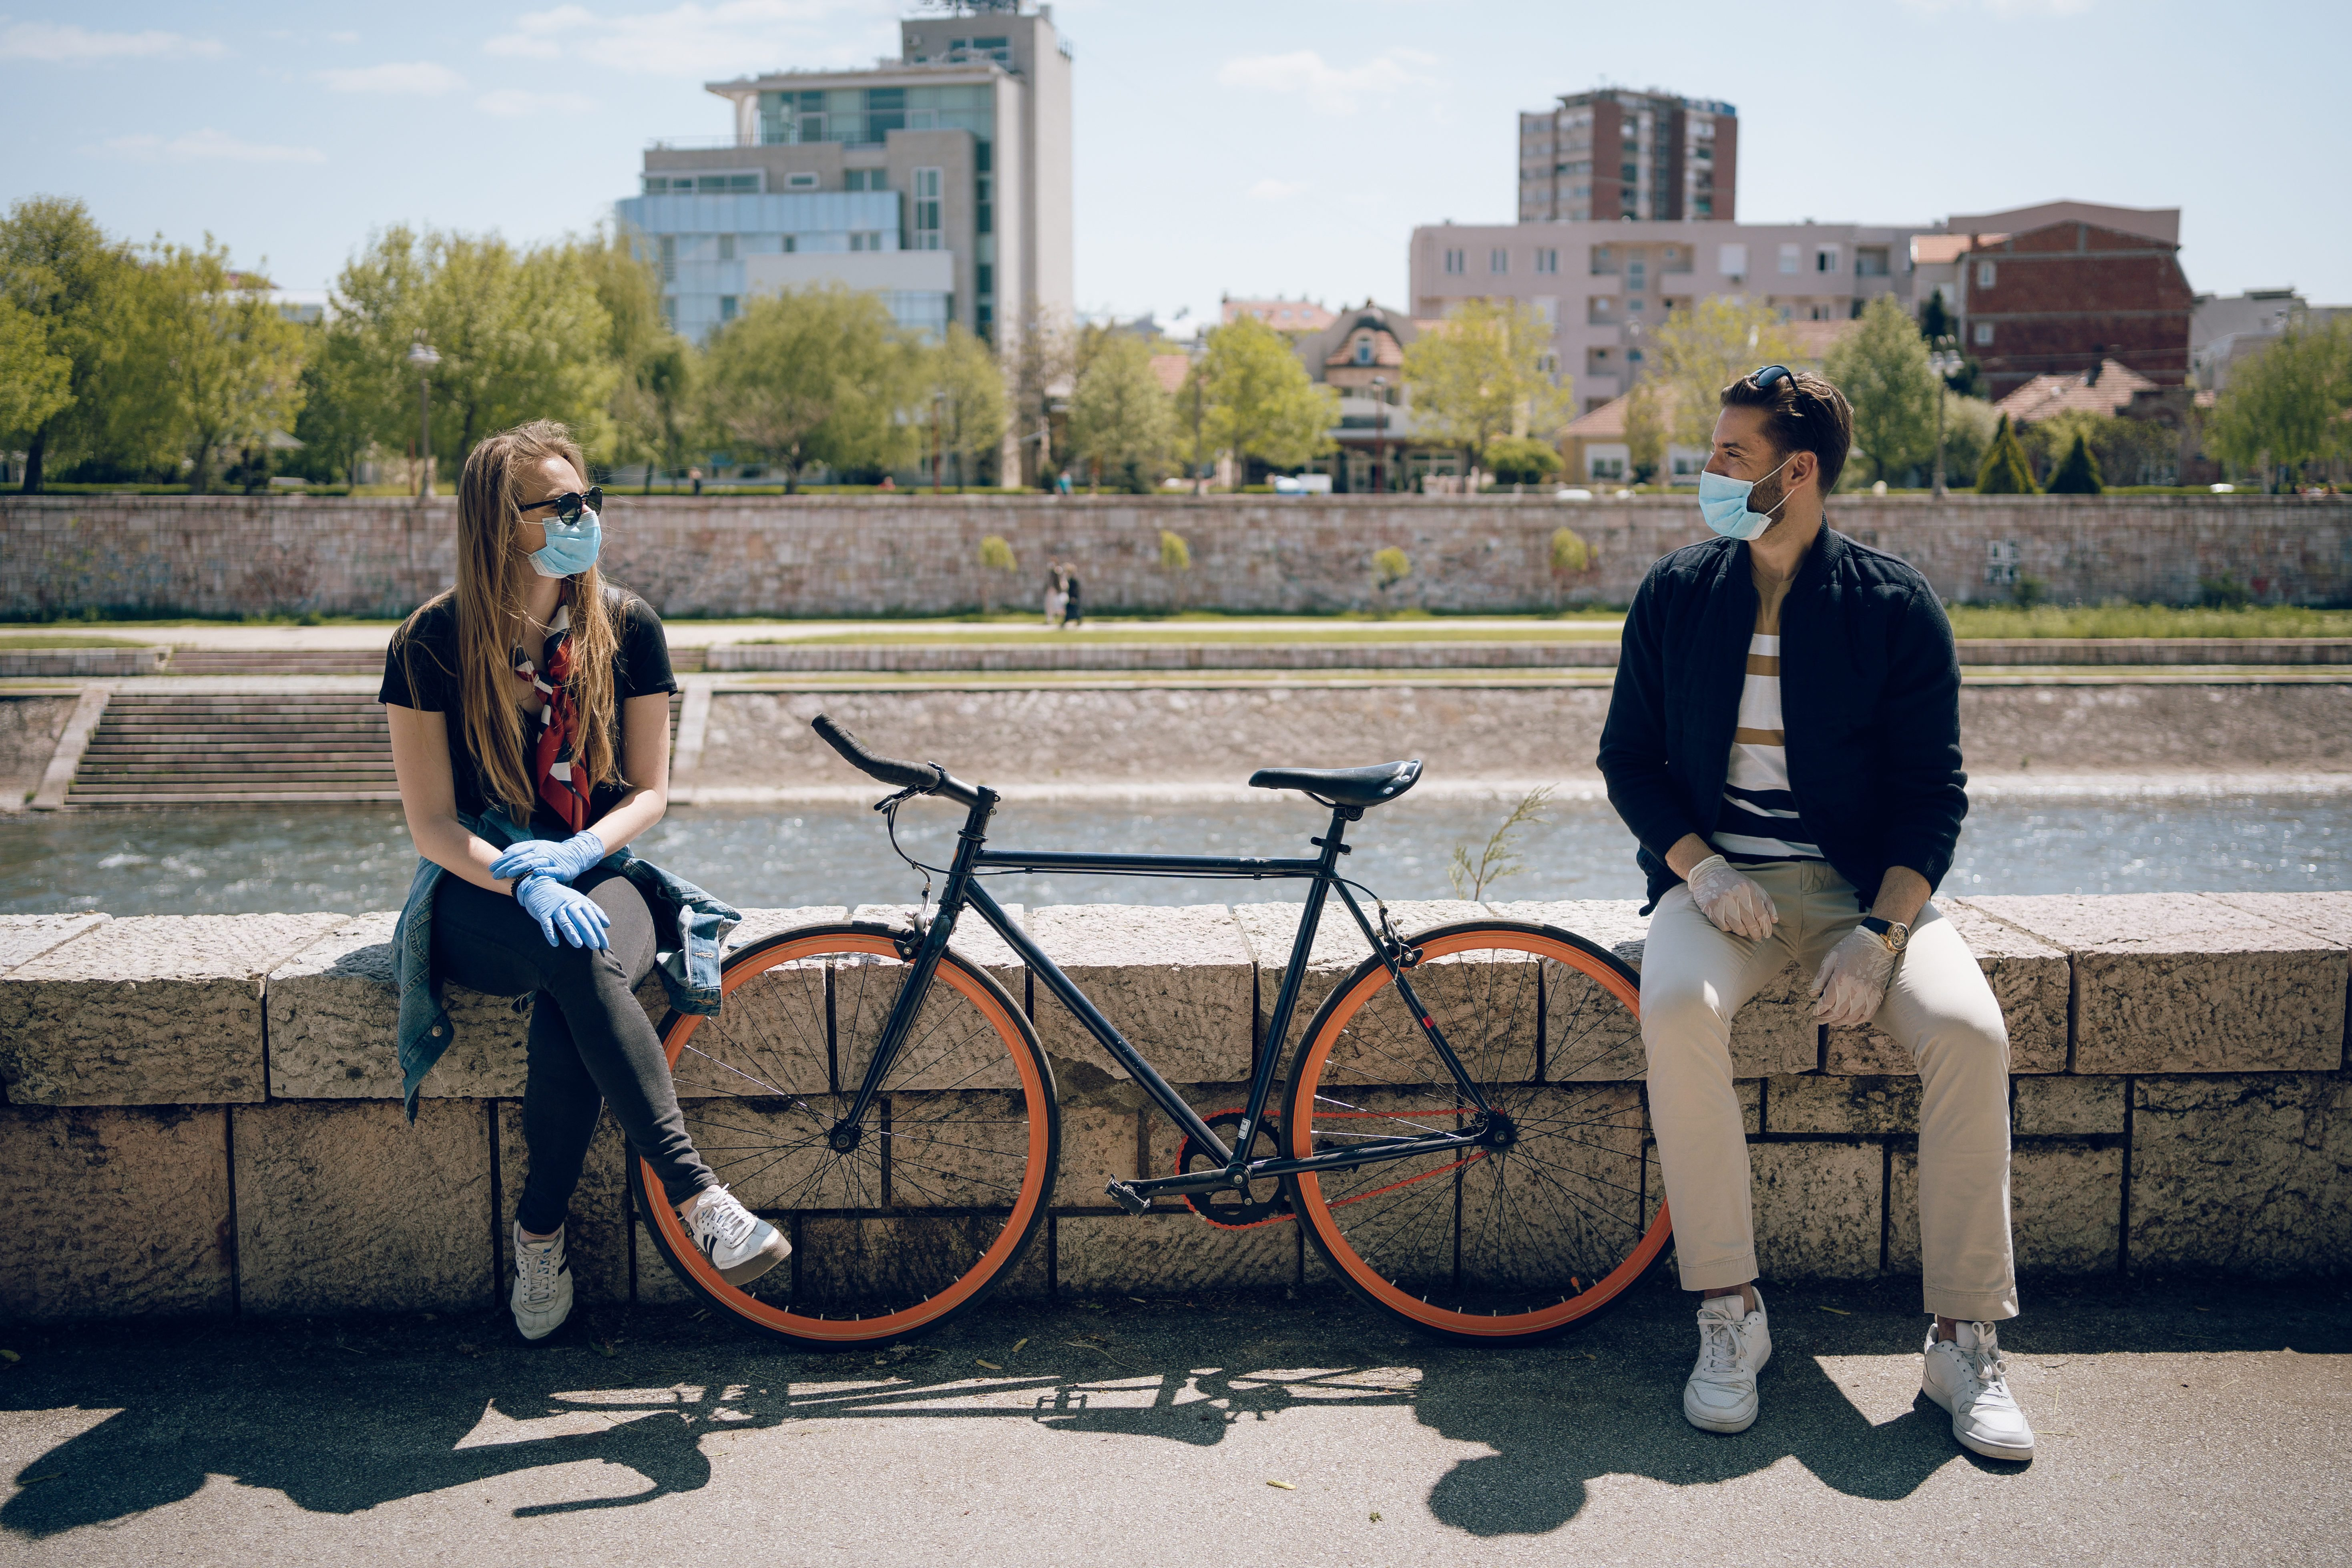 The prescribed measure of social distance is one bicycle